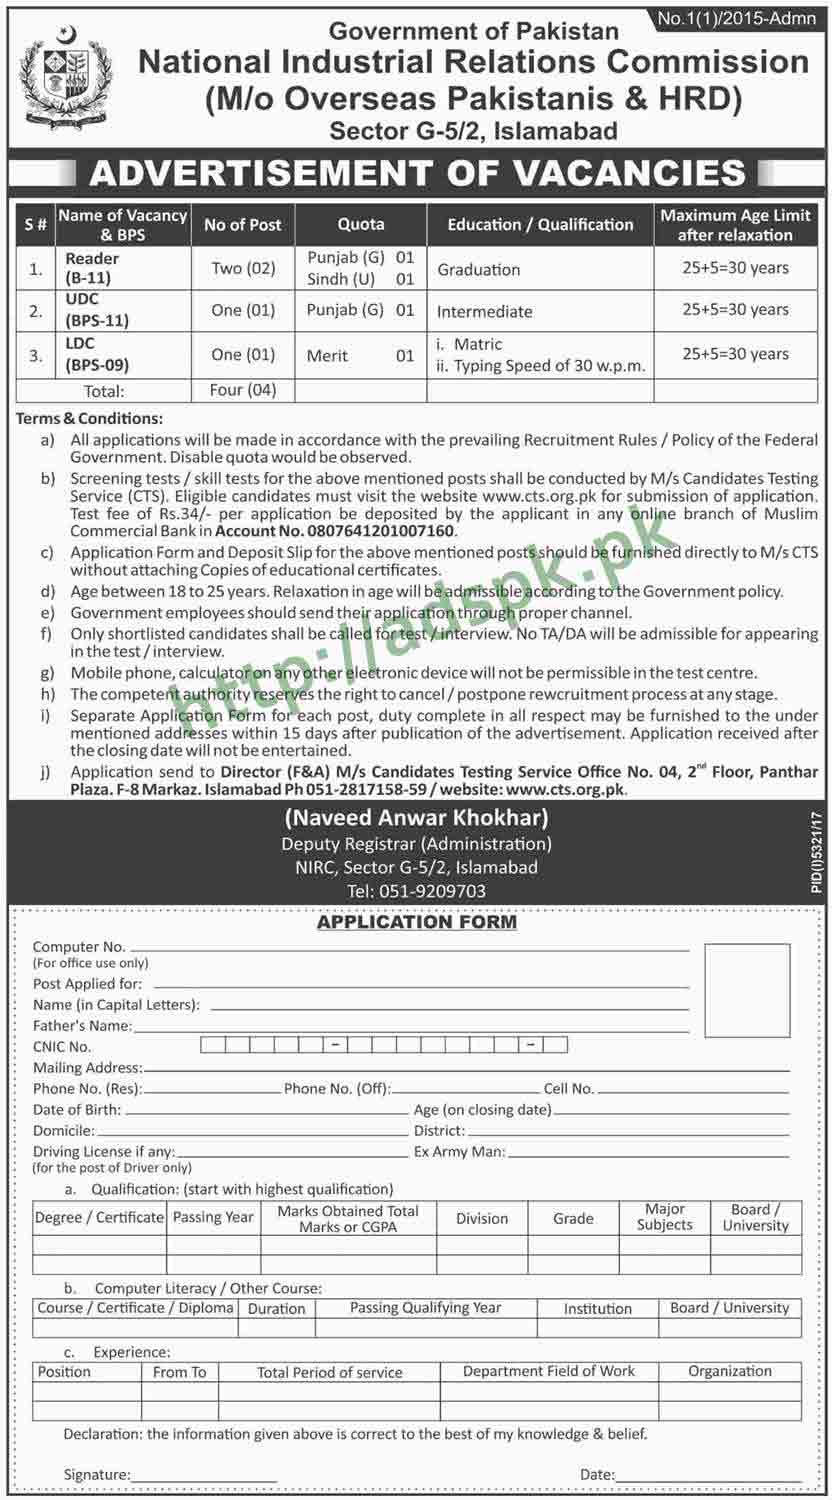 National Industrial Relations Commission Islamabad Jobs 2018 CTS Written Test MCQs Syllabus Paper Reader UDC LDC Jobs Application Form Deadline 12-04-2018 Apply Now by Candidates Testing Service